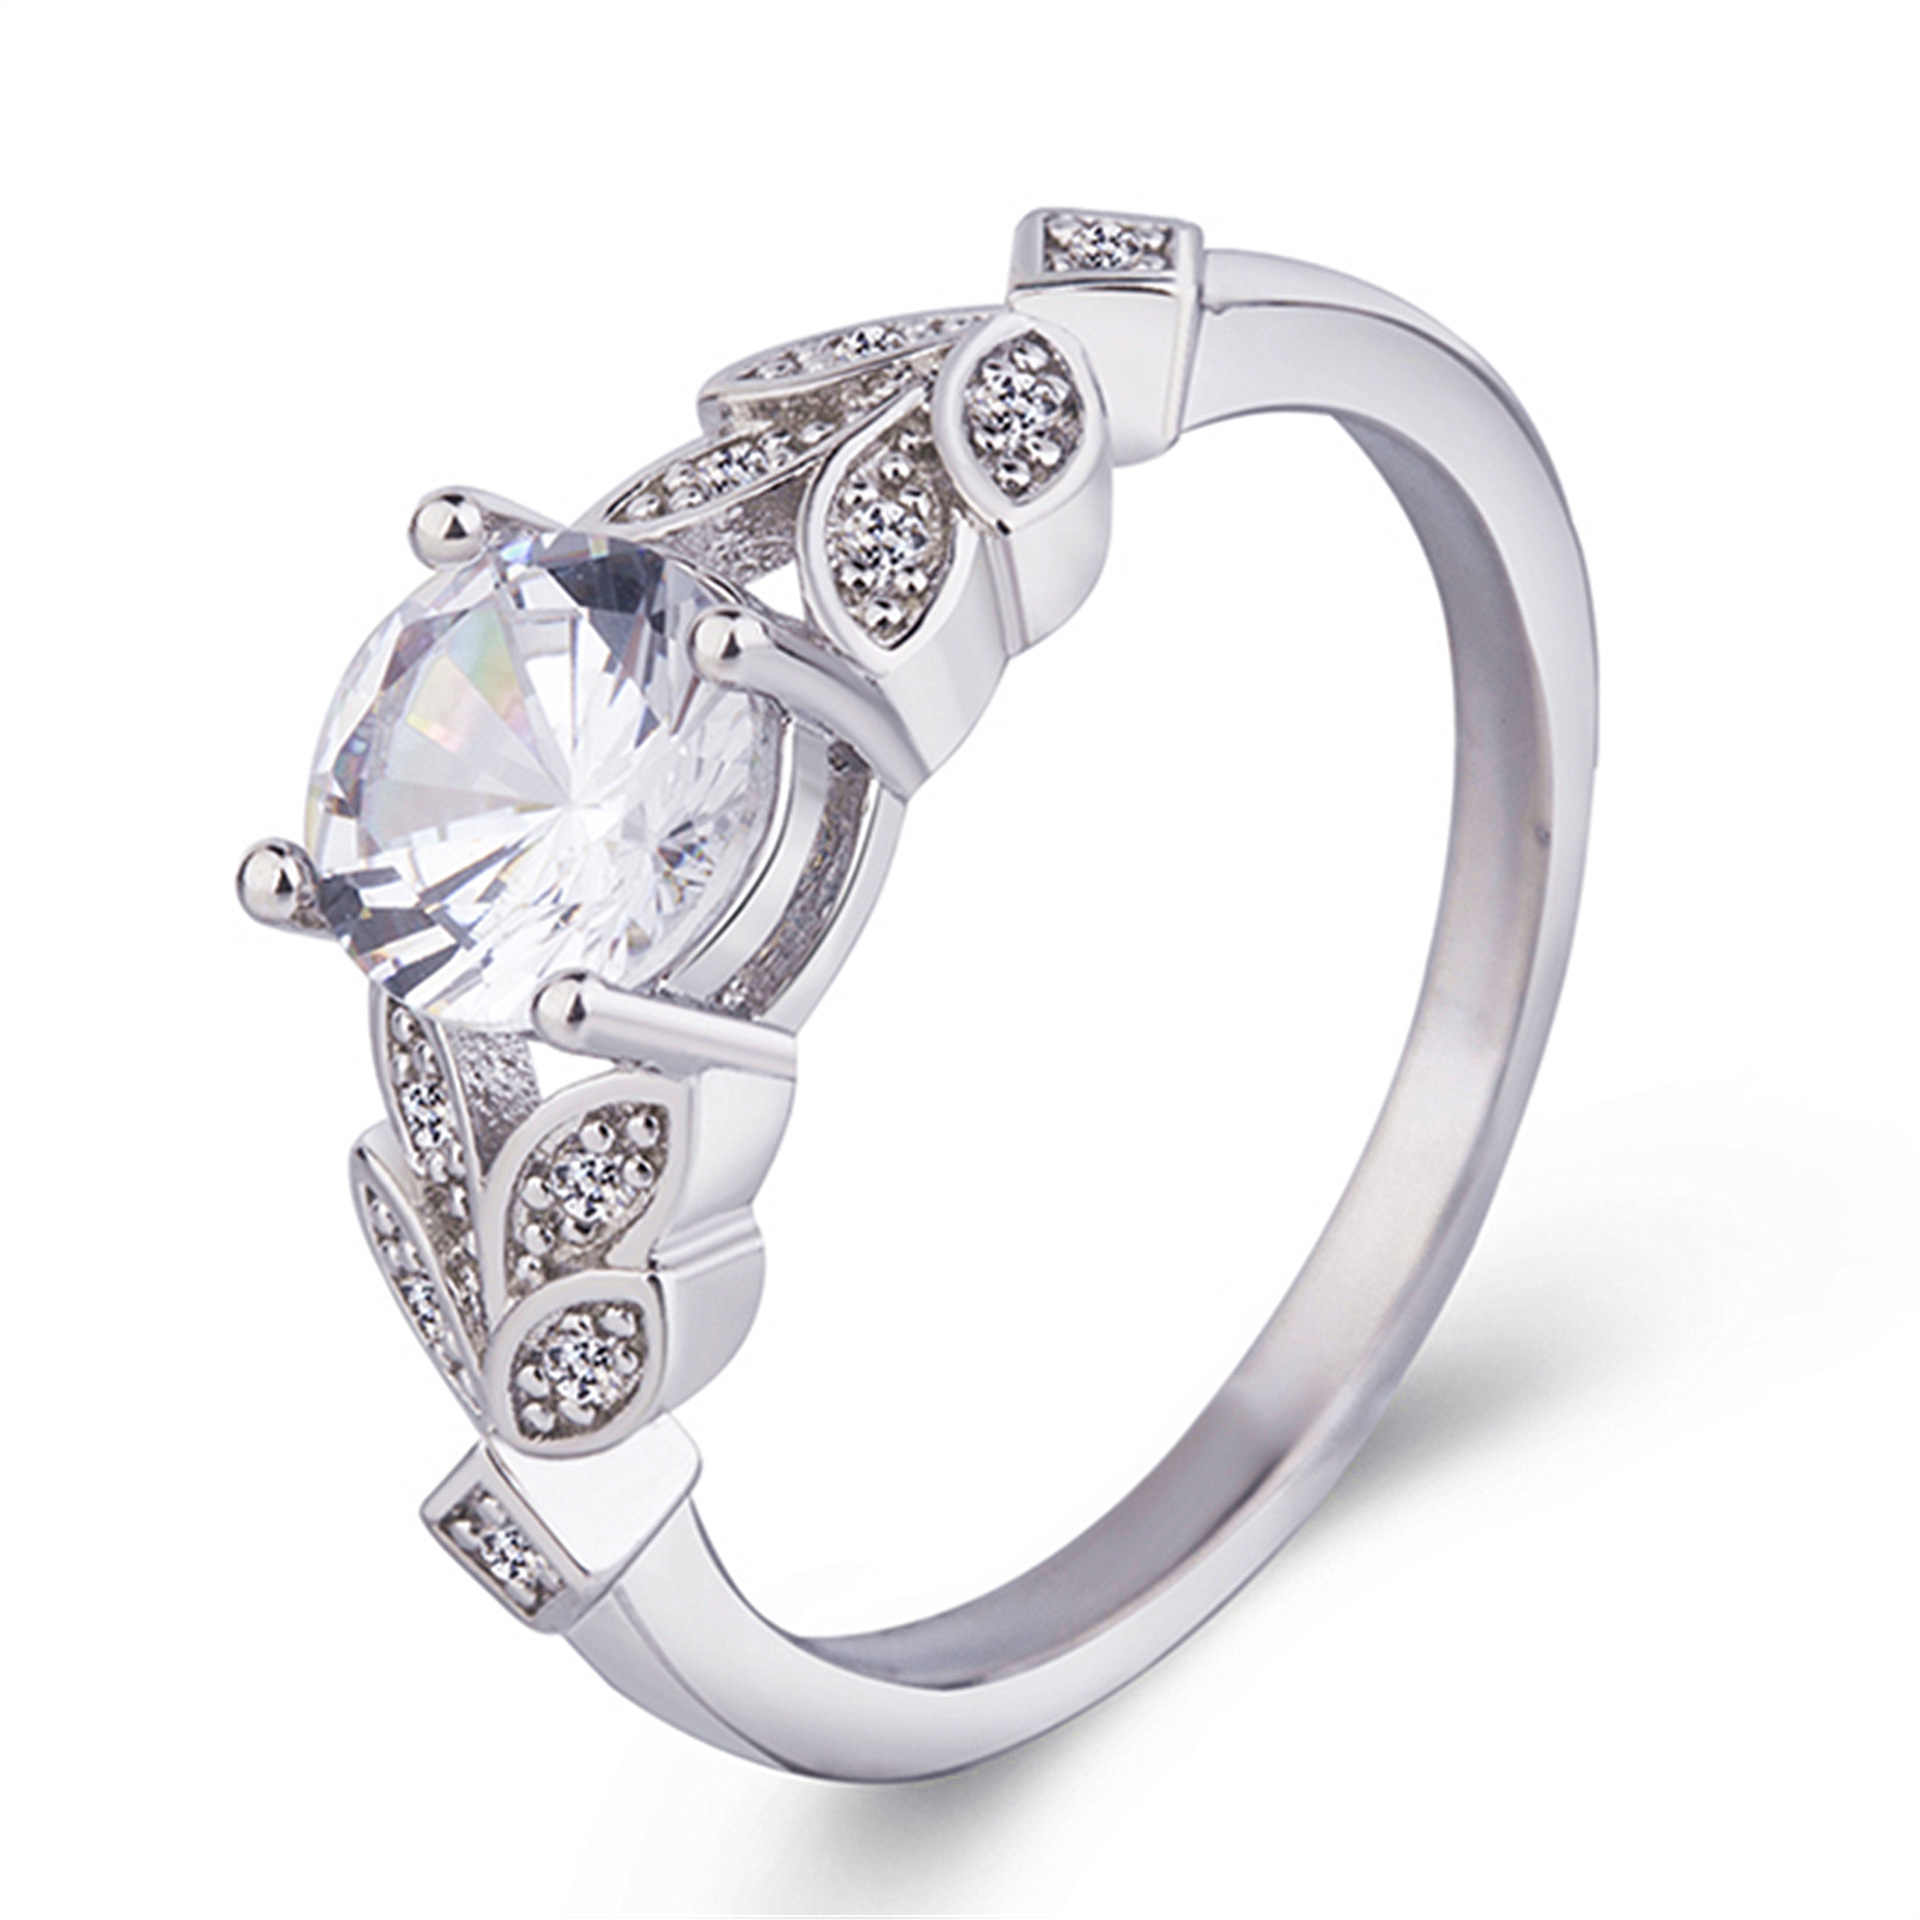 Wish Hot Sales Foreign Trade Wedding Ring Fashion Jewelry Women's Ring Inlaid Super Shiny Zircon Rings Manufacturers Wholesale